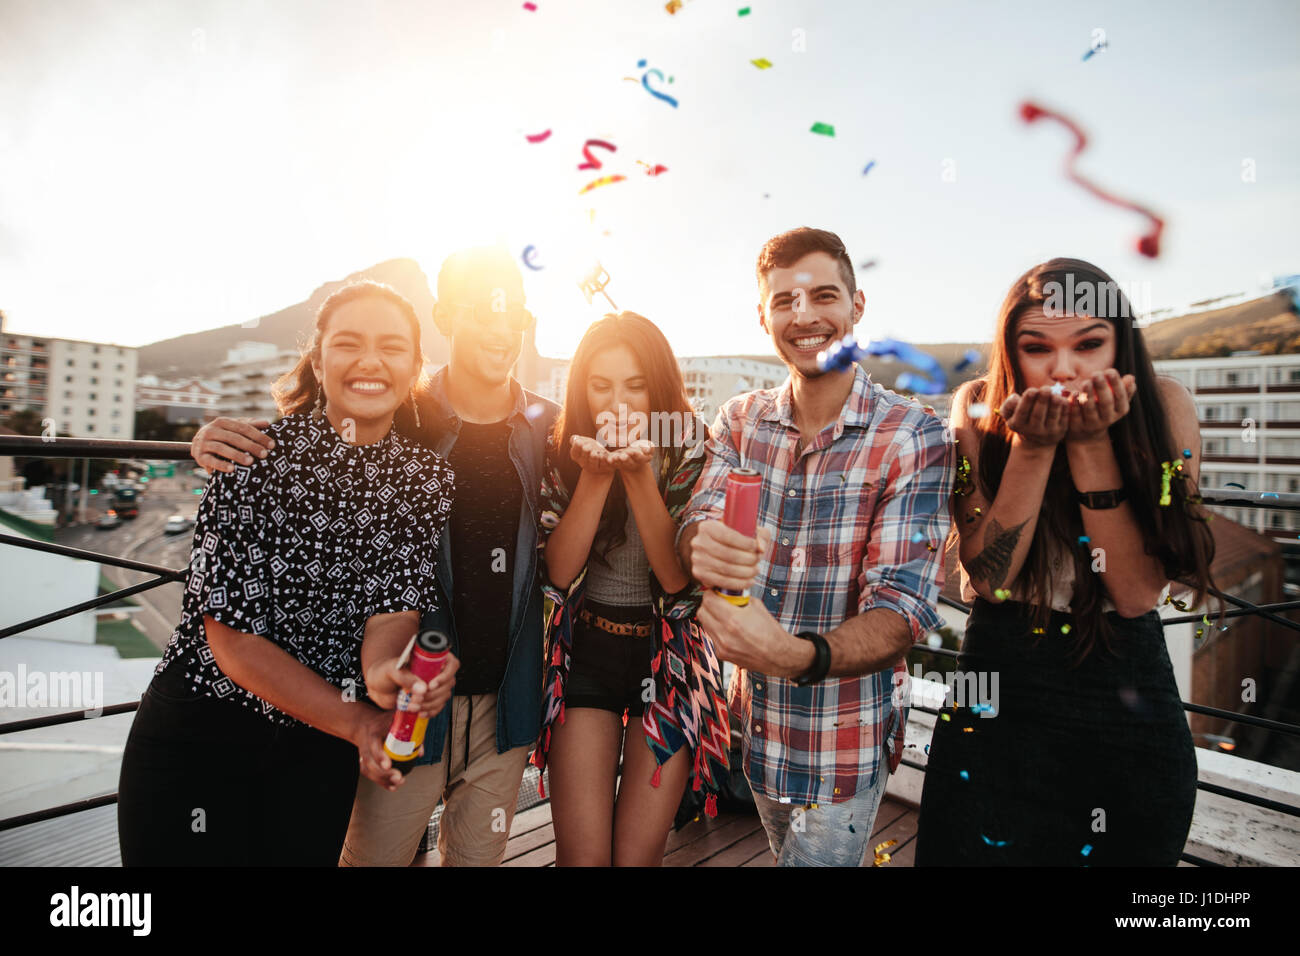 Group of friends hanging out together and blowing confetti on rooftop party. - Stock Image